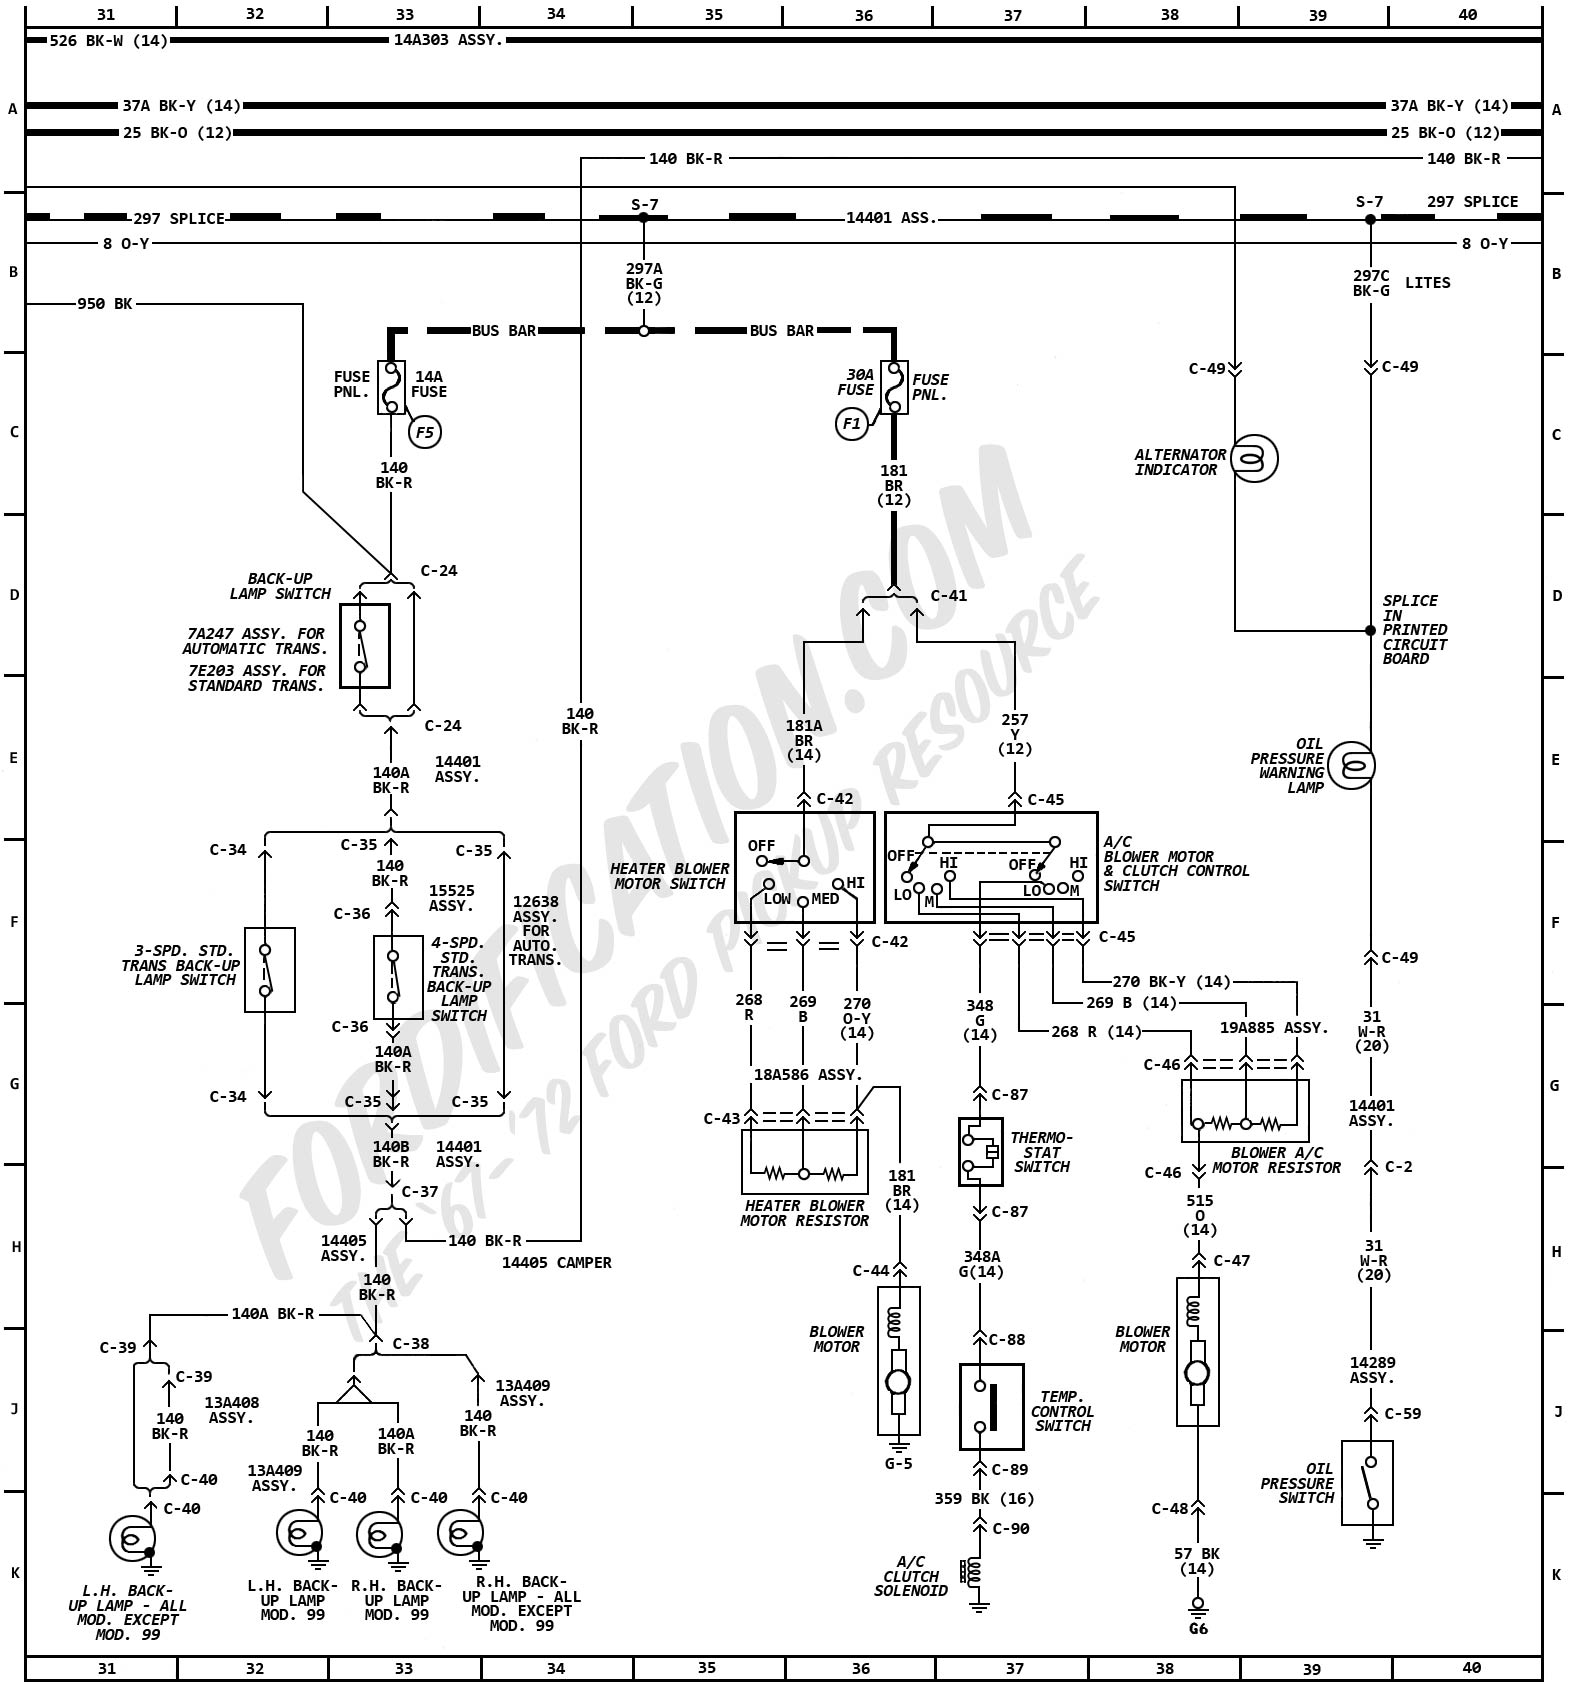 1972 ford truck wiring diagrams fordification com rh fordification com motor wiring diagram single phase motor wiring diagram pdf